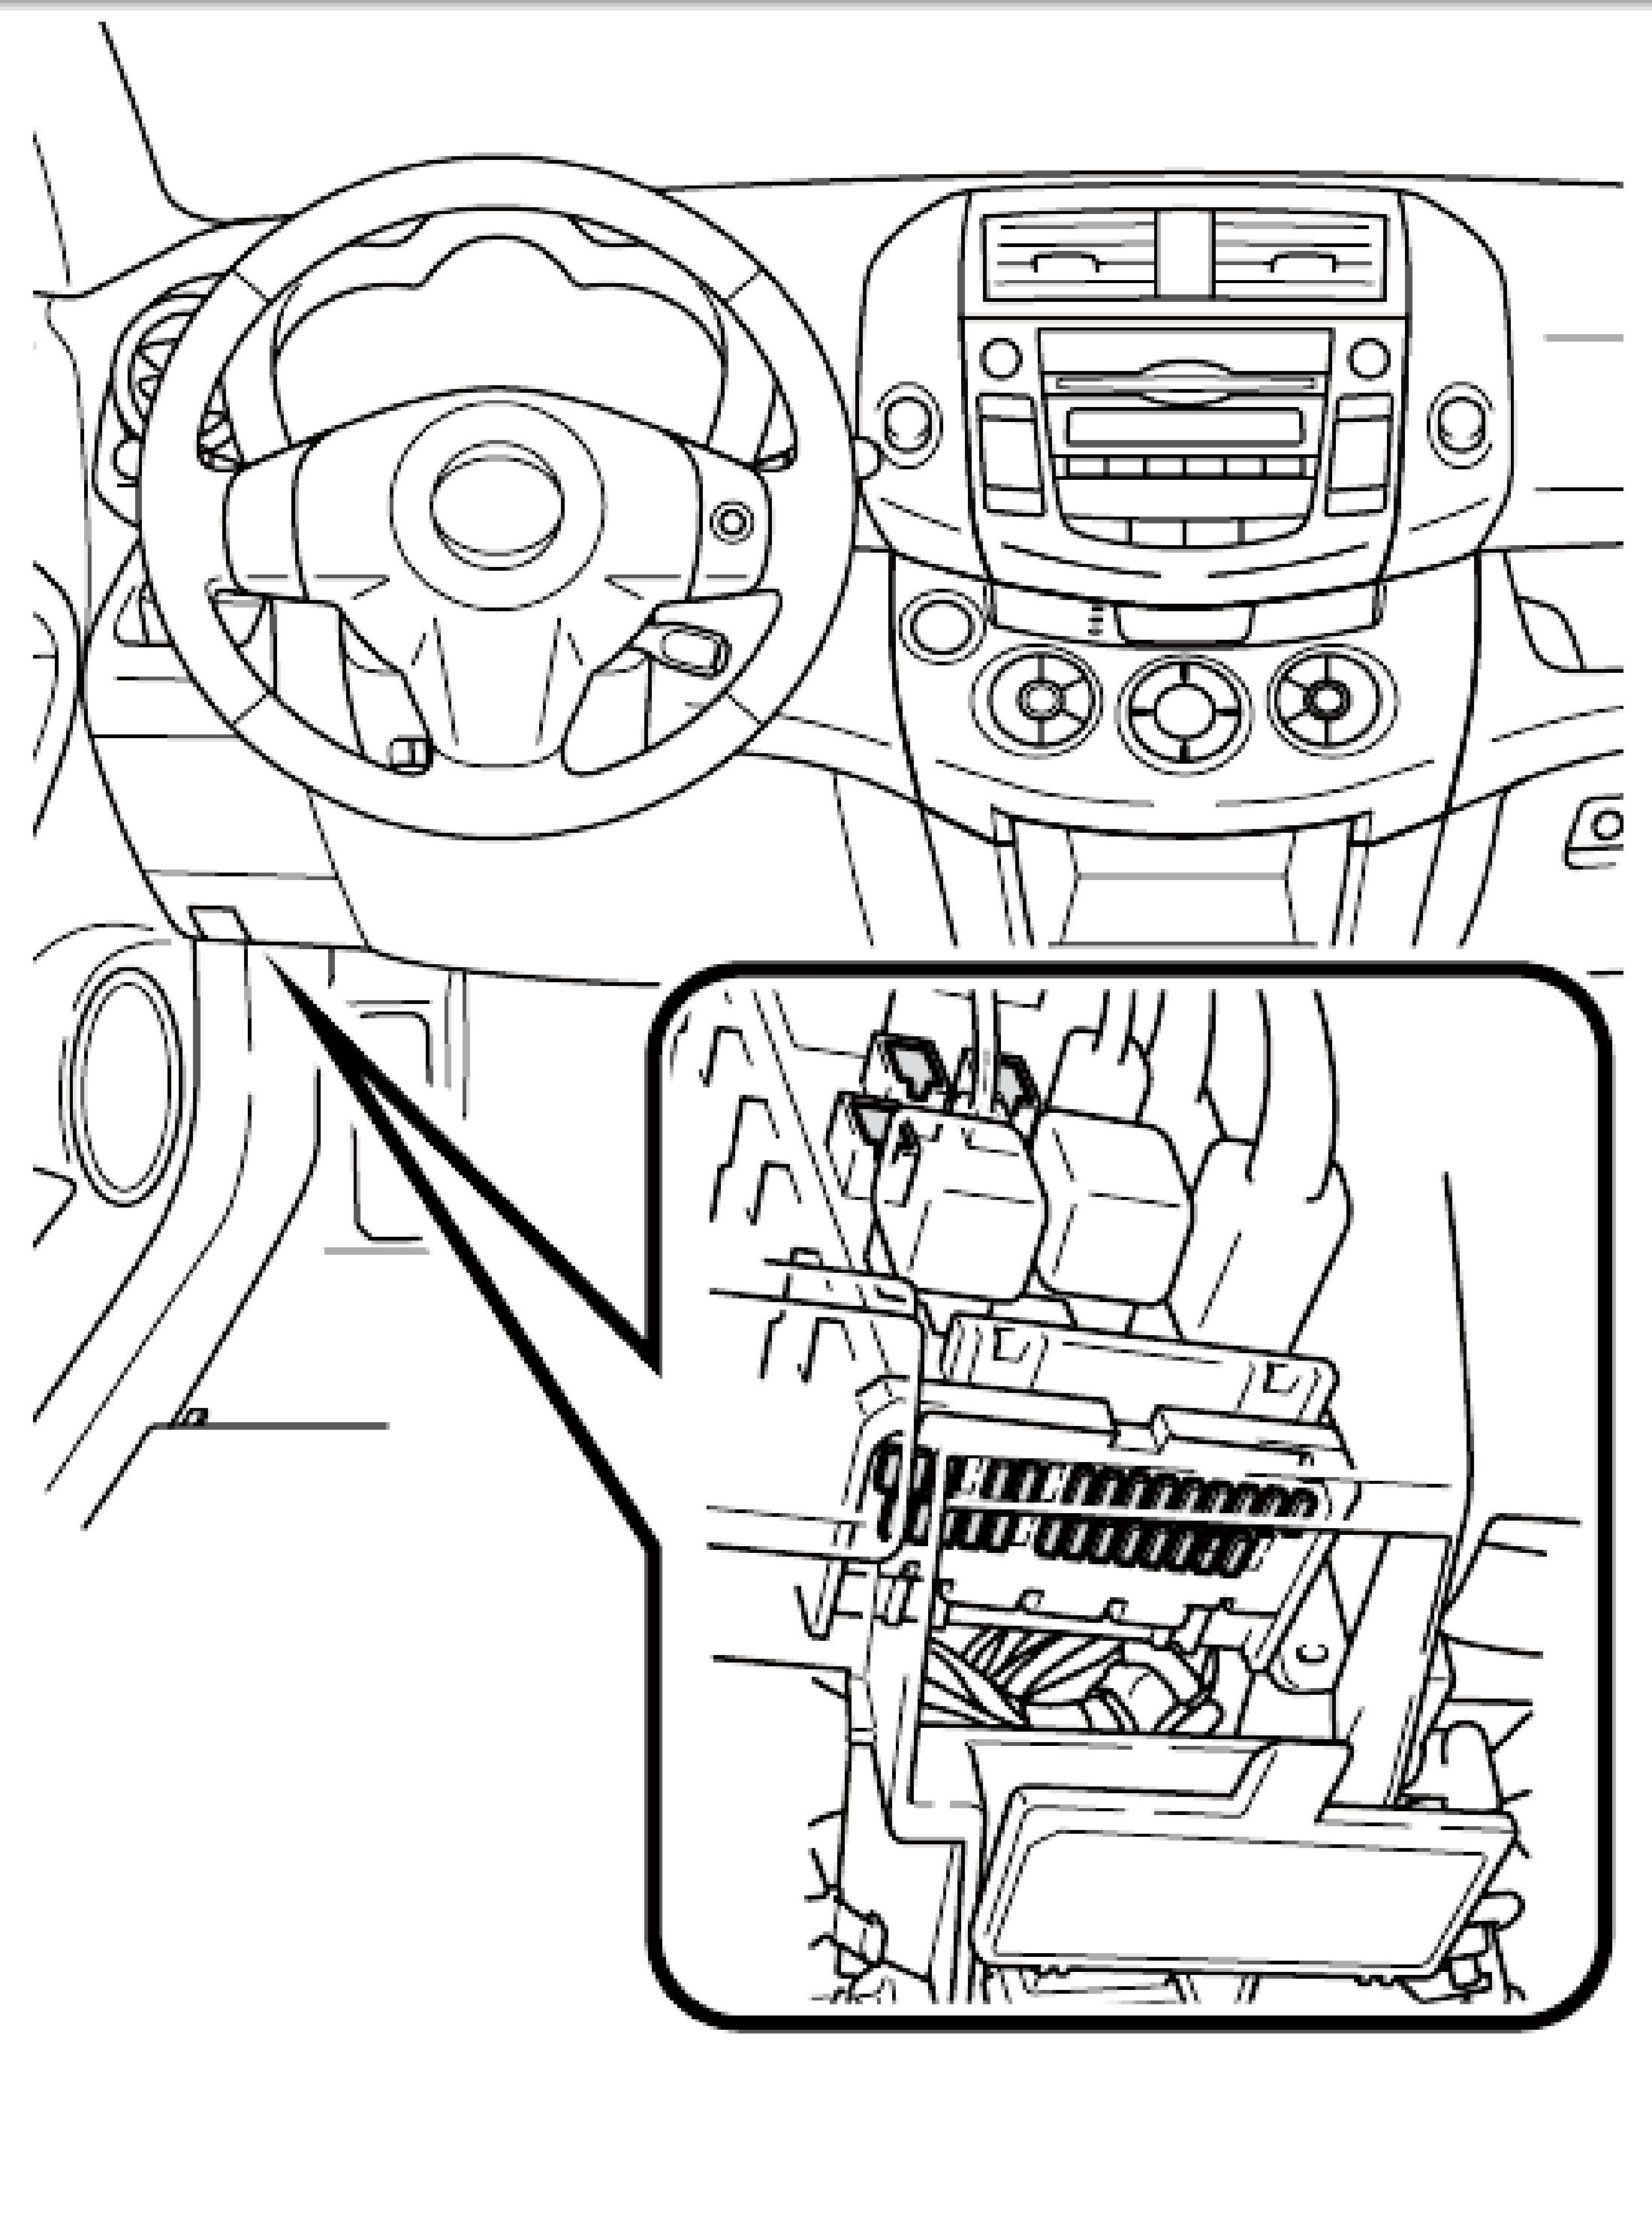 1993 toyota camry exhaust system diagram